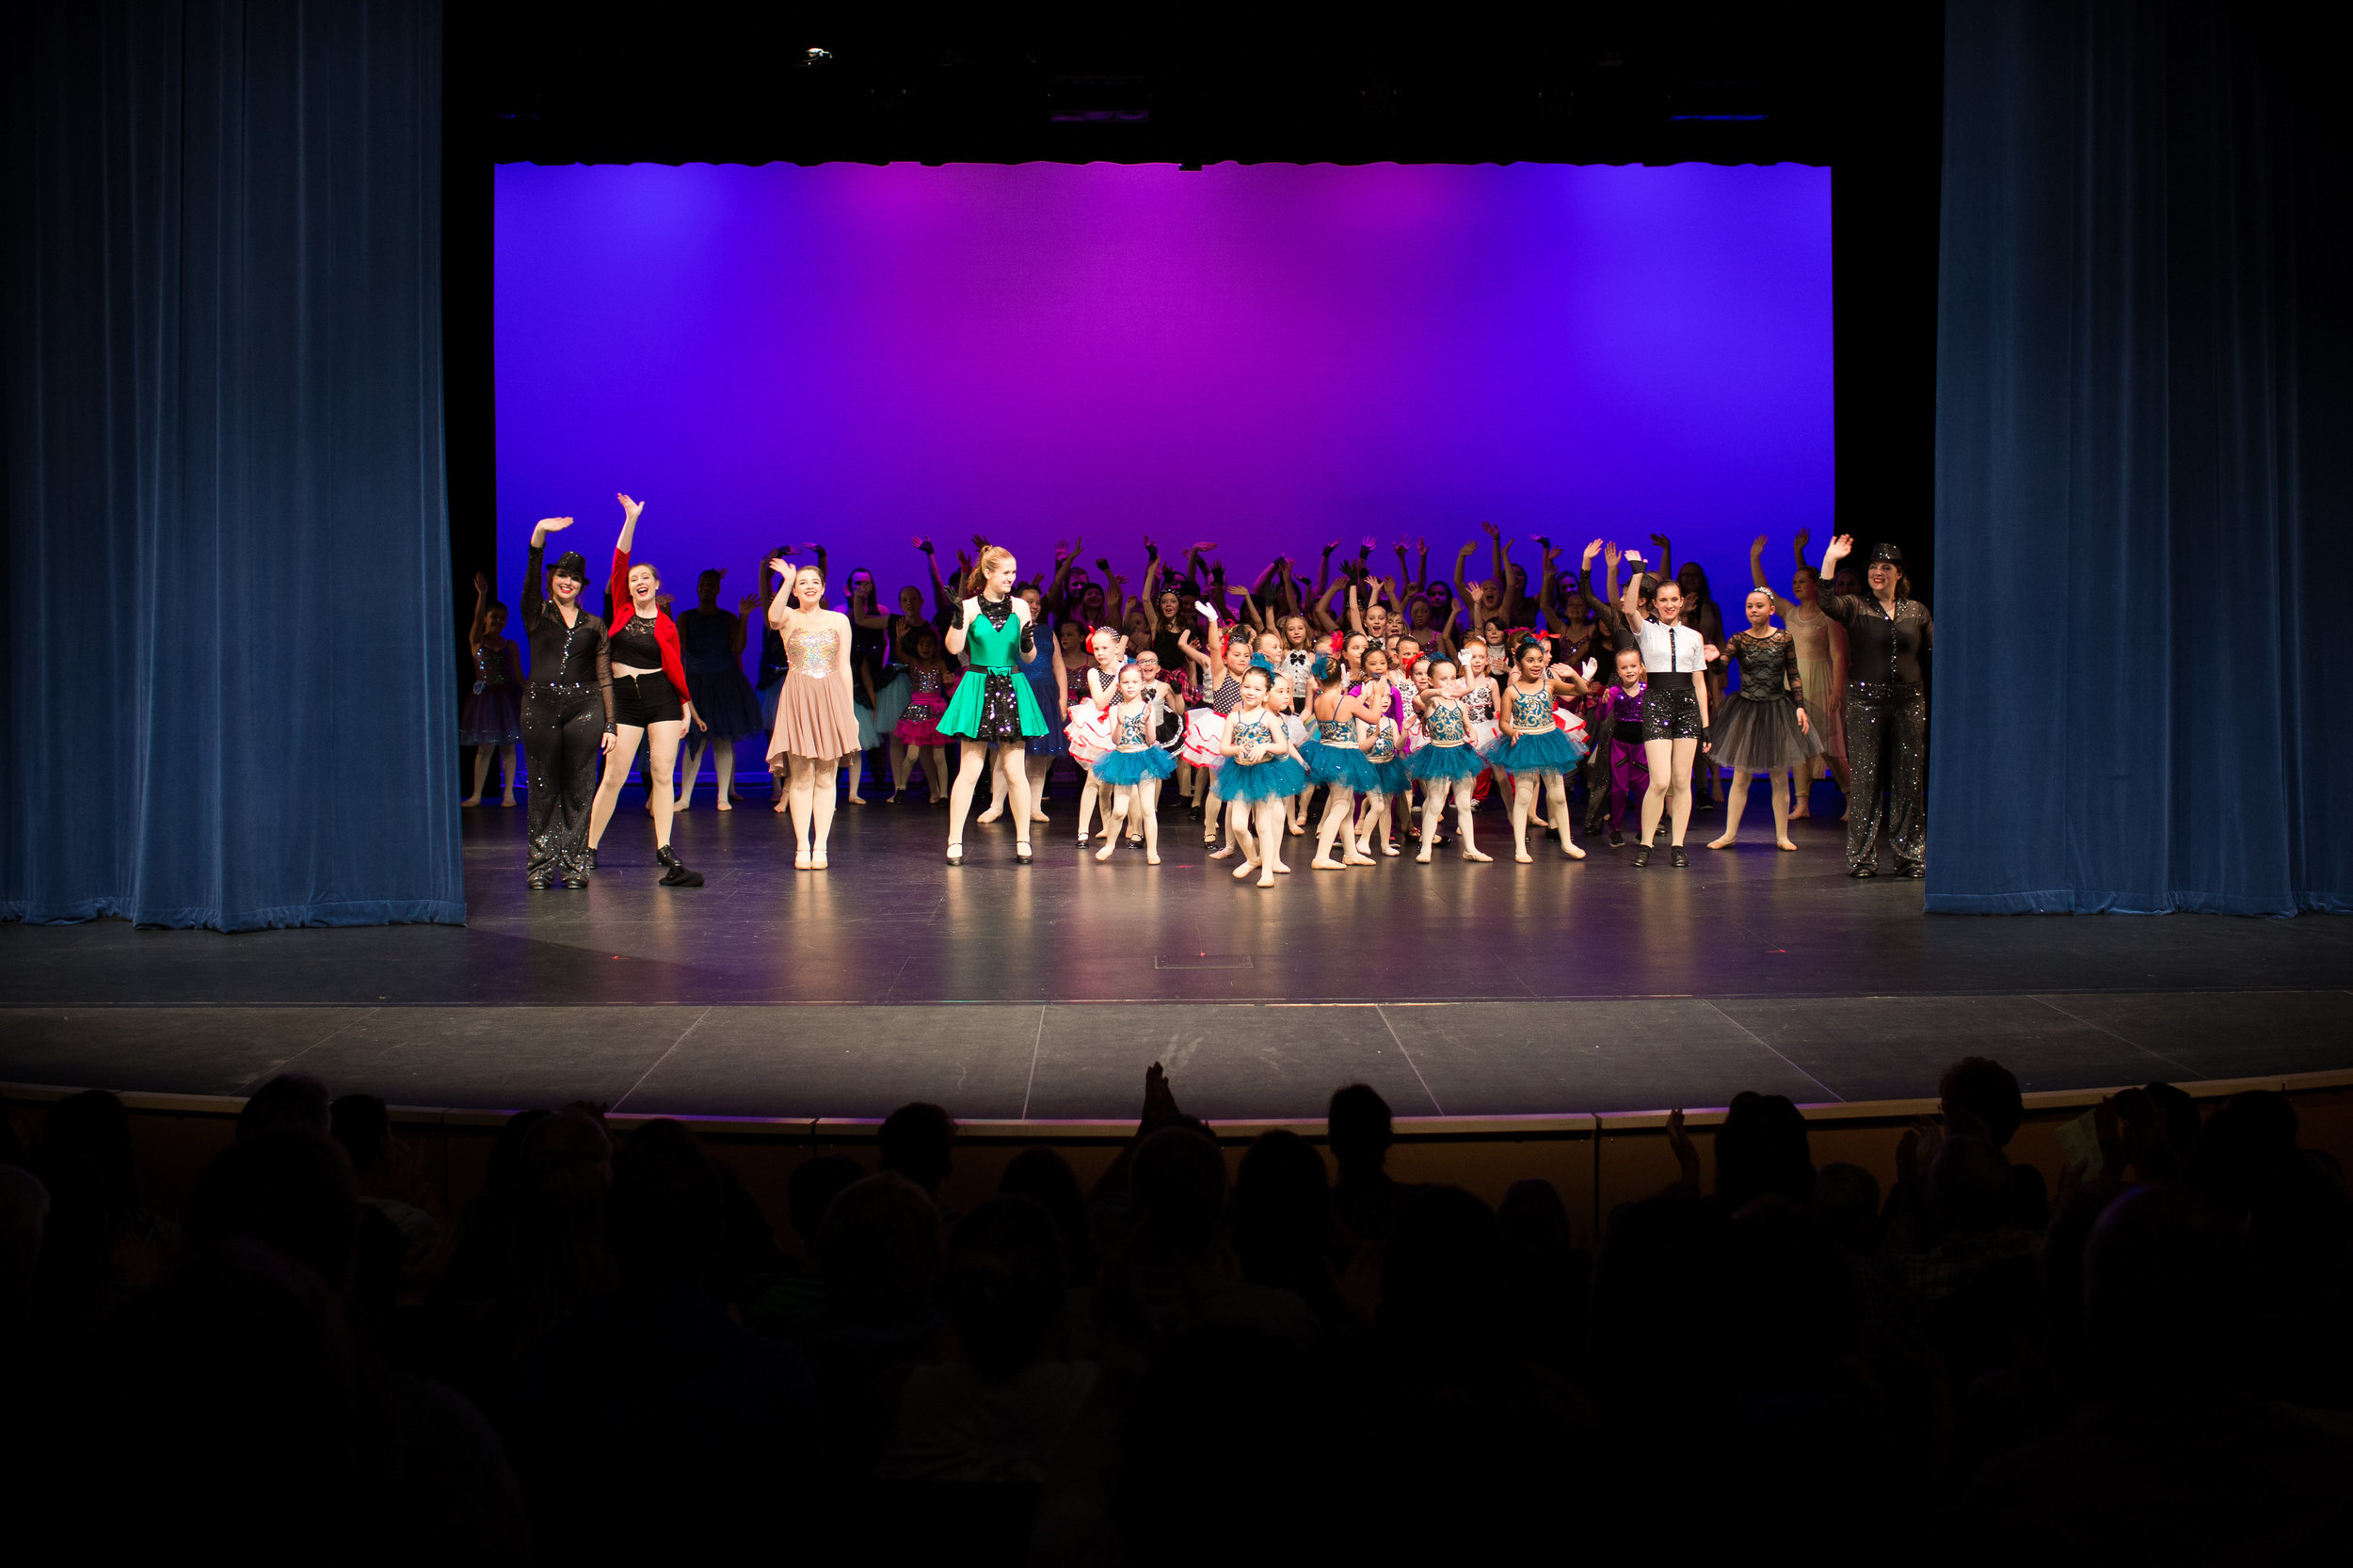 The Finale at our annual 2016 recital! Great job everyone!